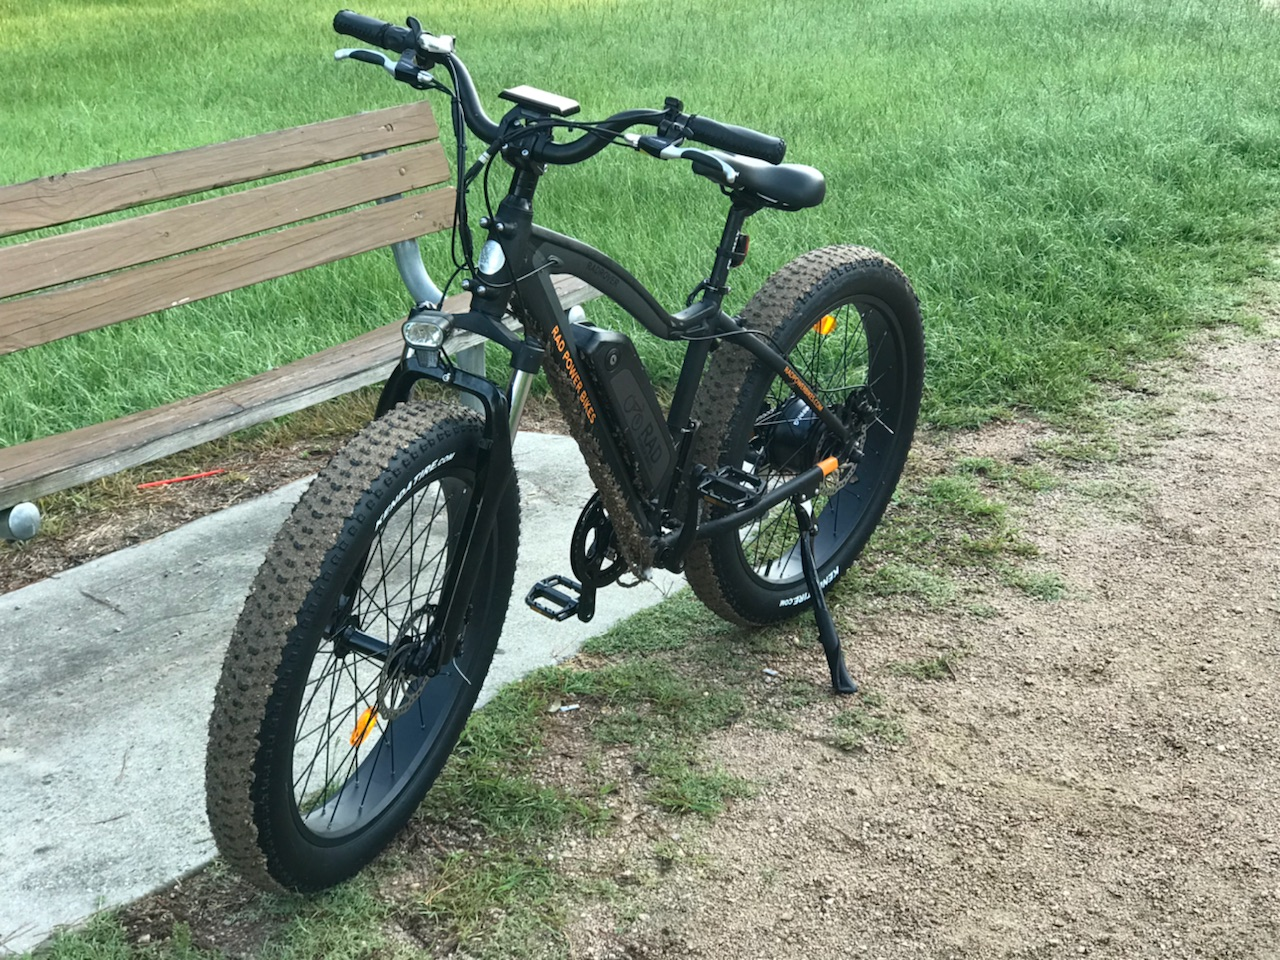 Rad Mini In Houston Texas Electric Bike Forums Q A Help Reviews And Maintenance